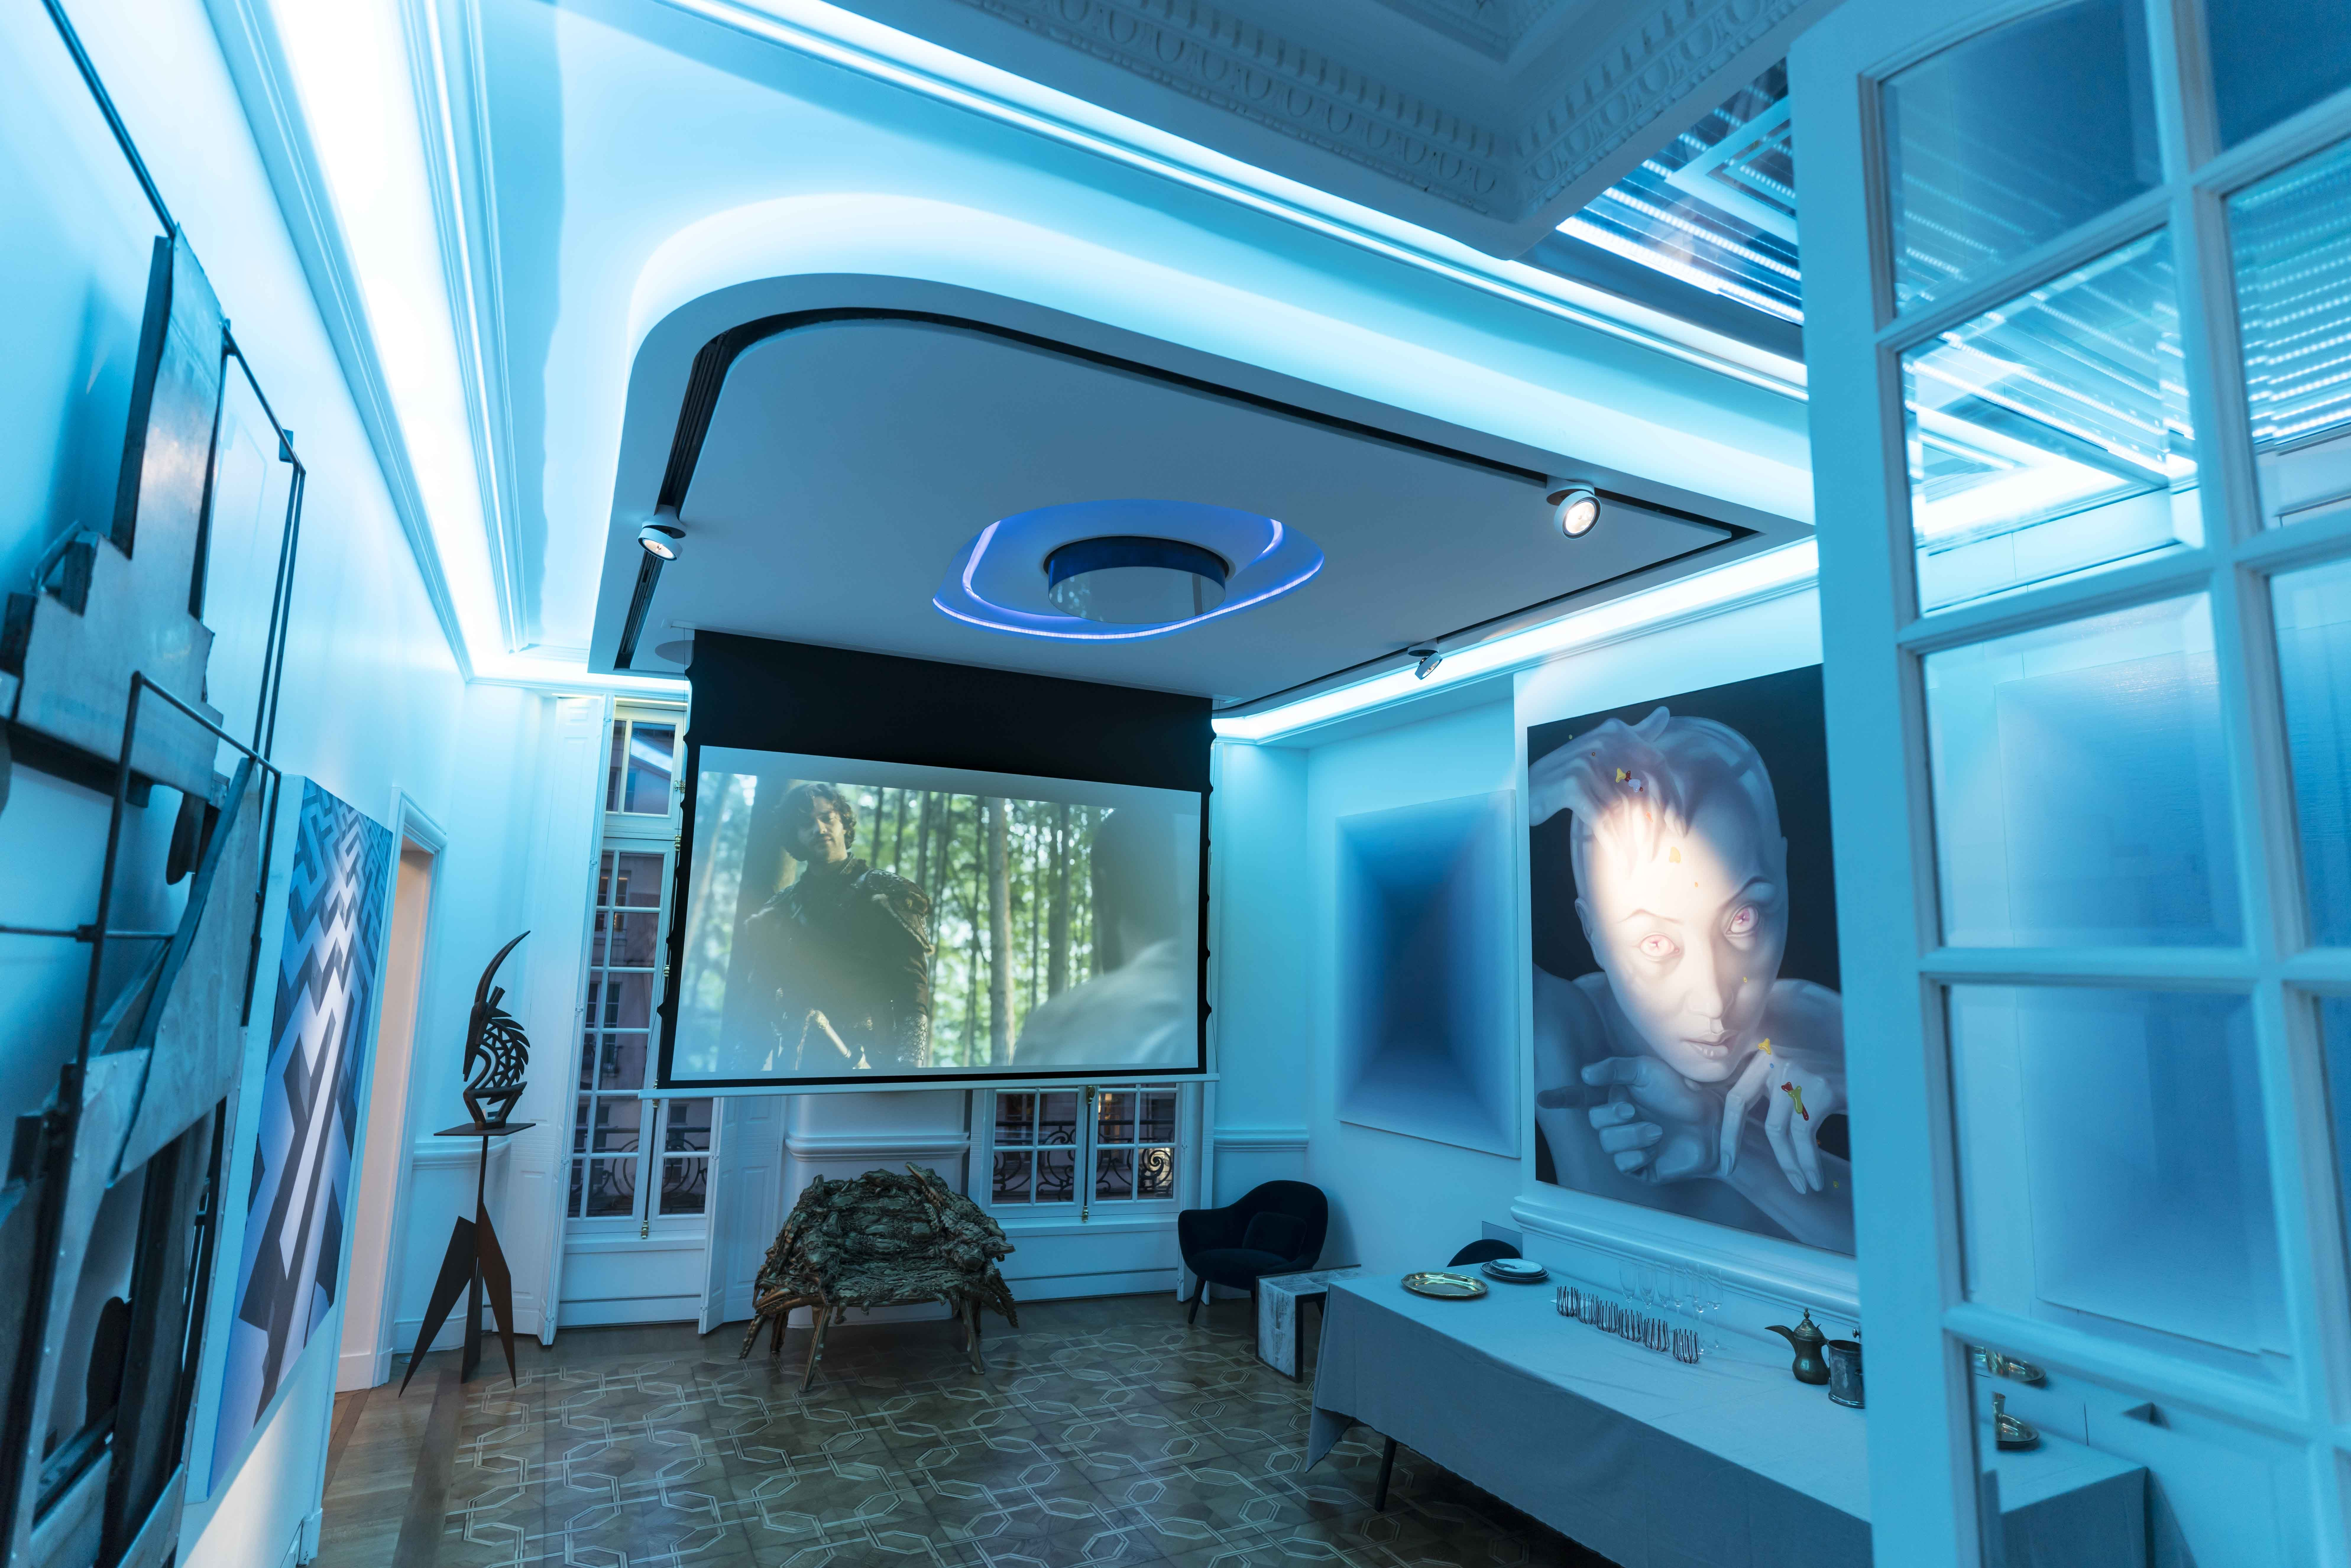 Installation Art&sound Paris Screenresearch , Jbl Synthesis, Stealth ...